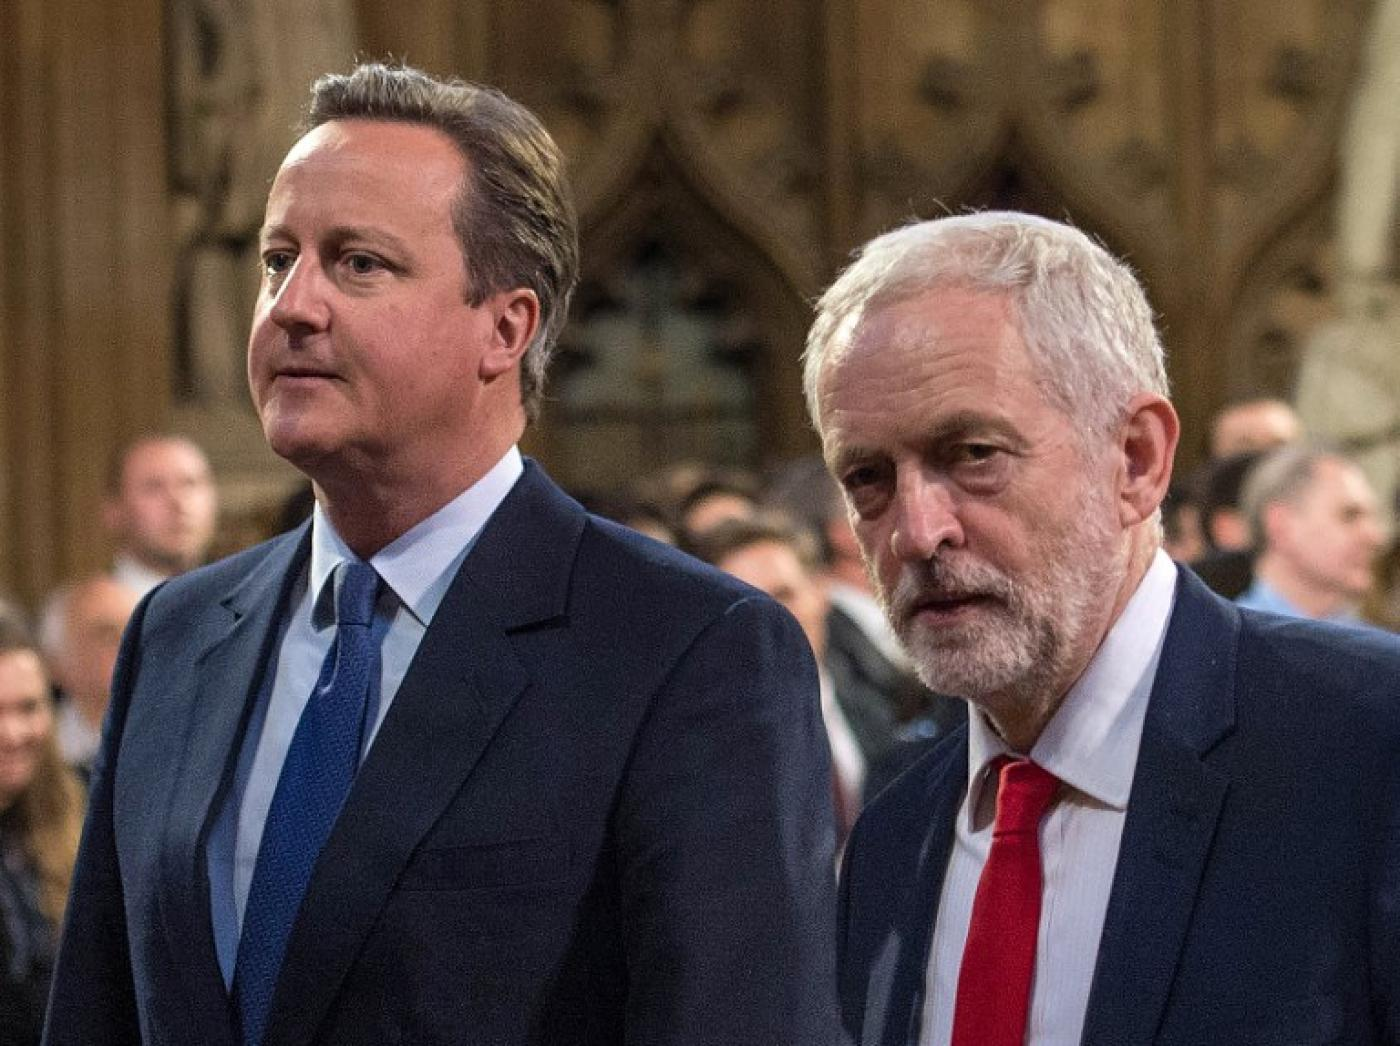 Labour leader Corbyn calls for reform of Prevent strategy | Middle